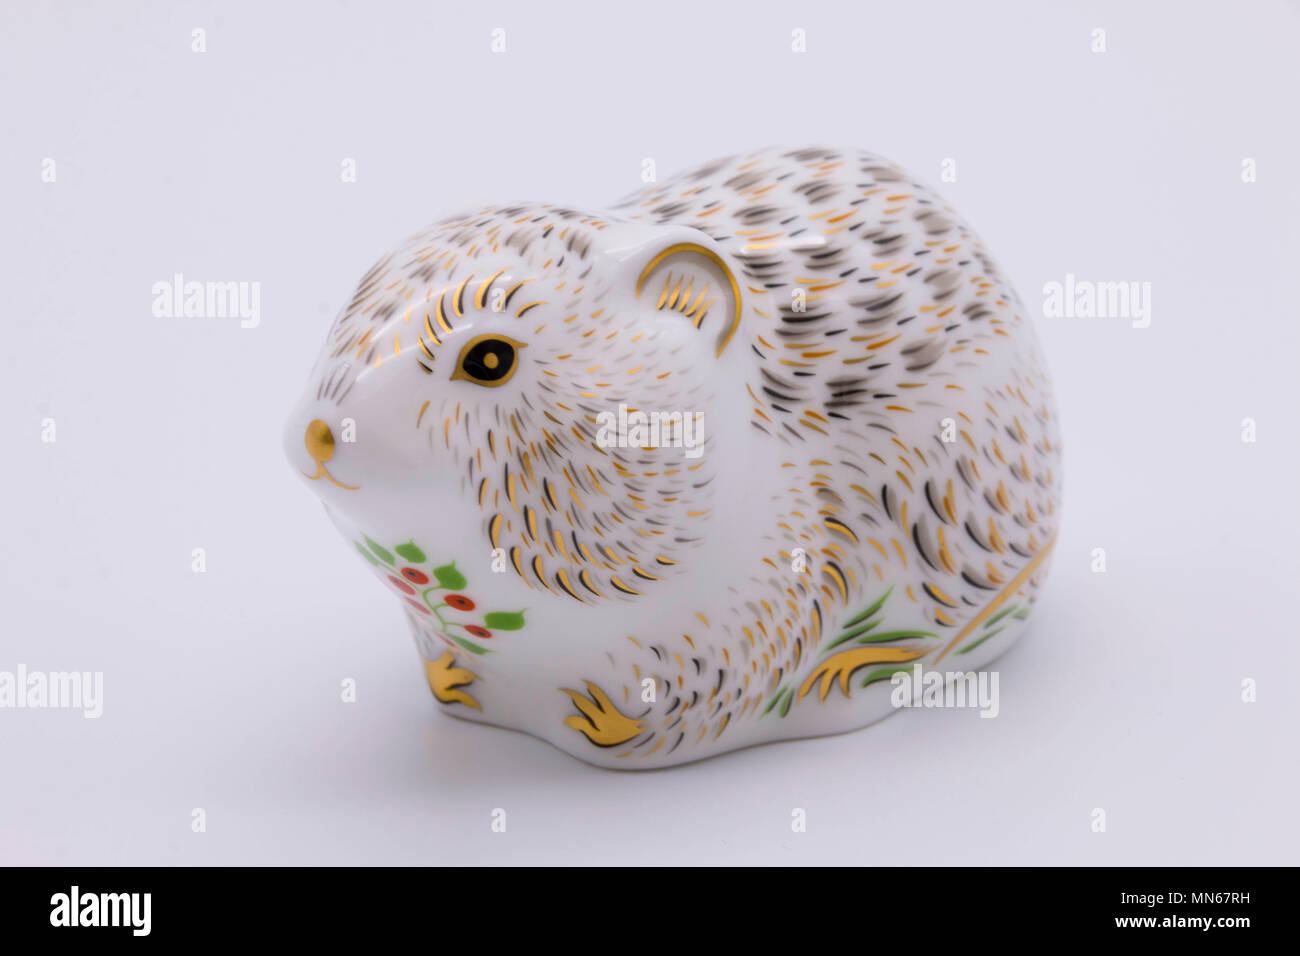 Royal Crown Derby bone china paperweight of a vole uk - Stock Image